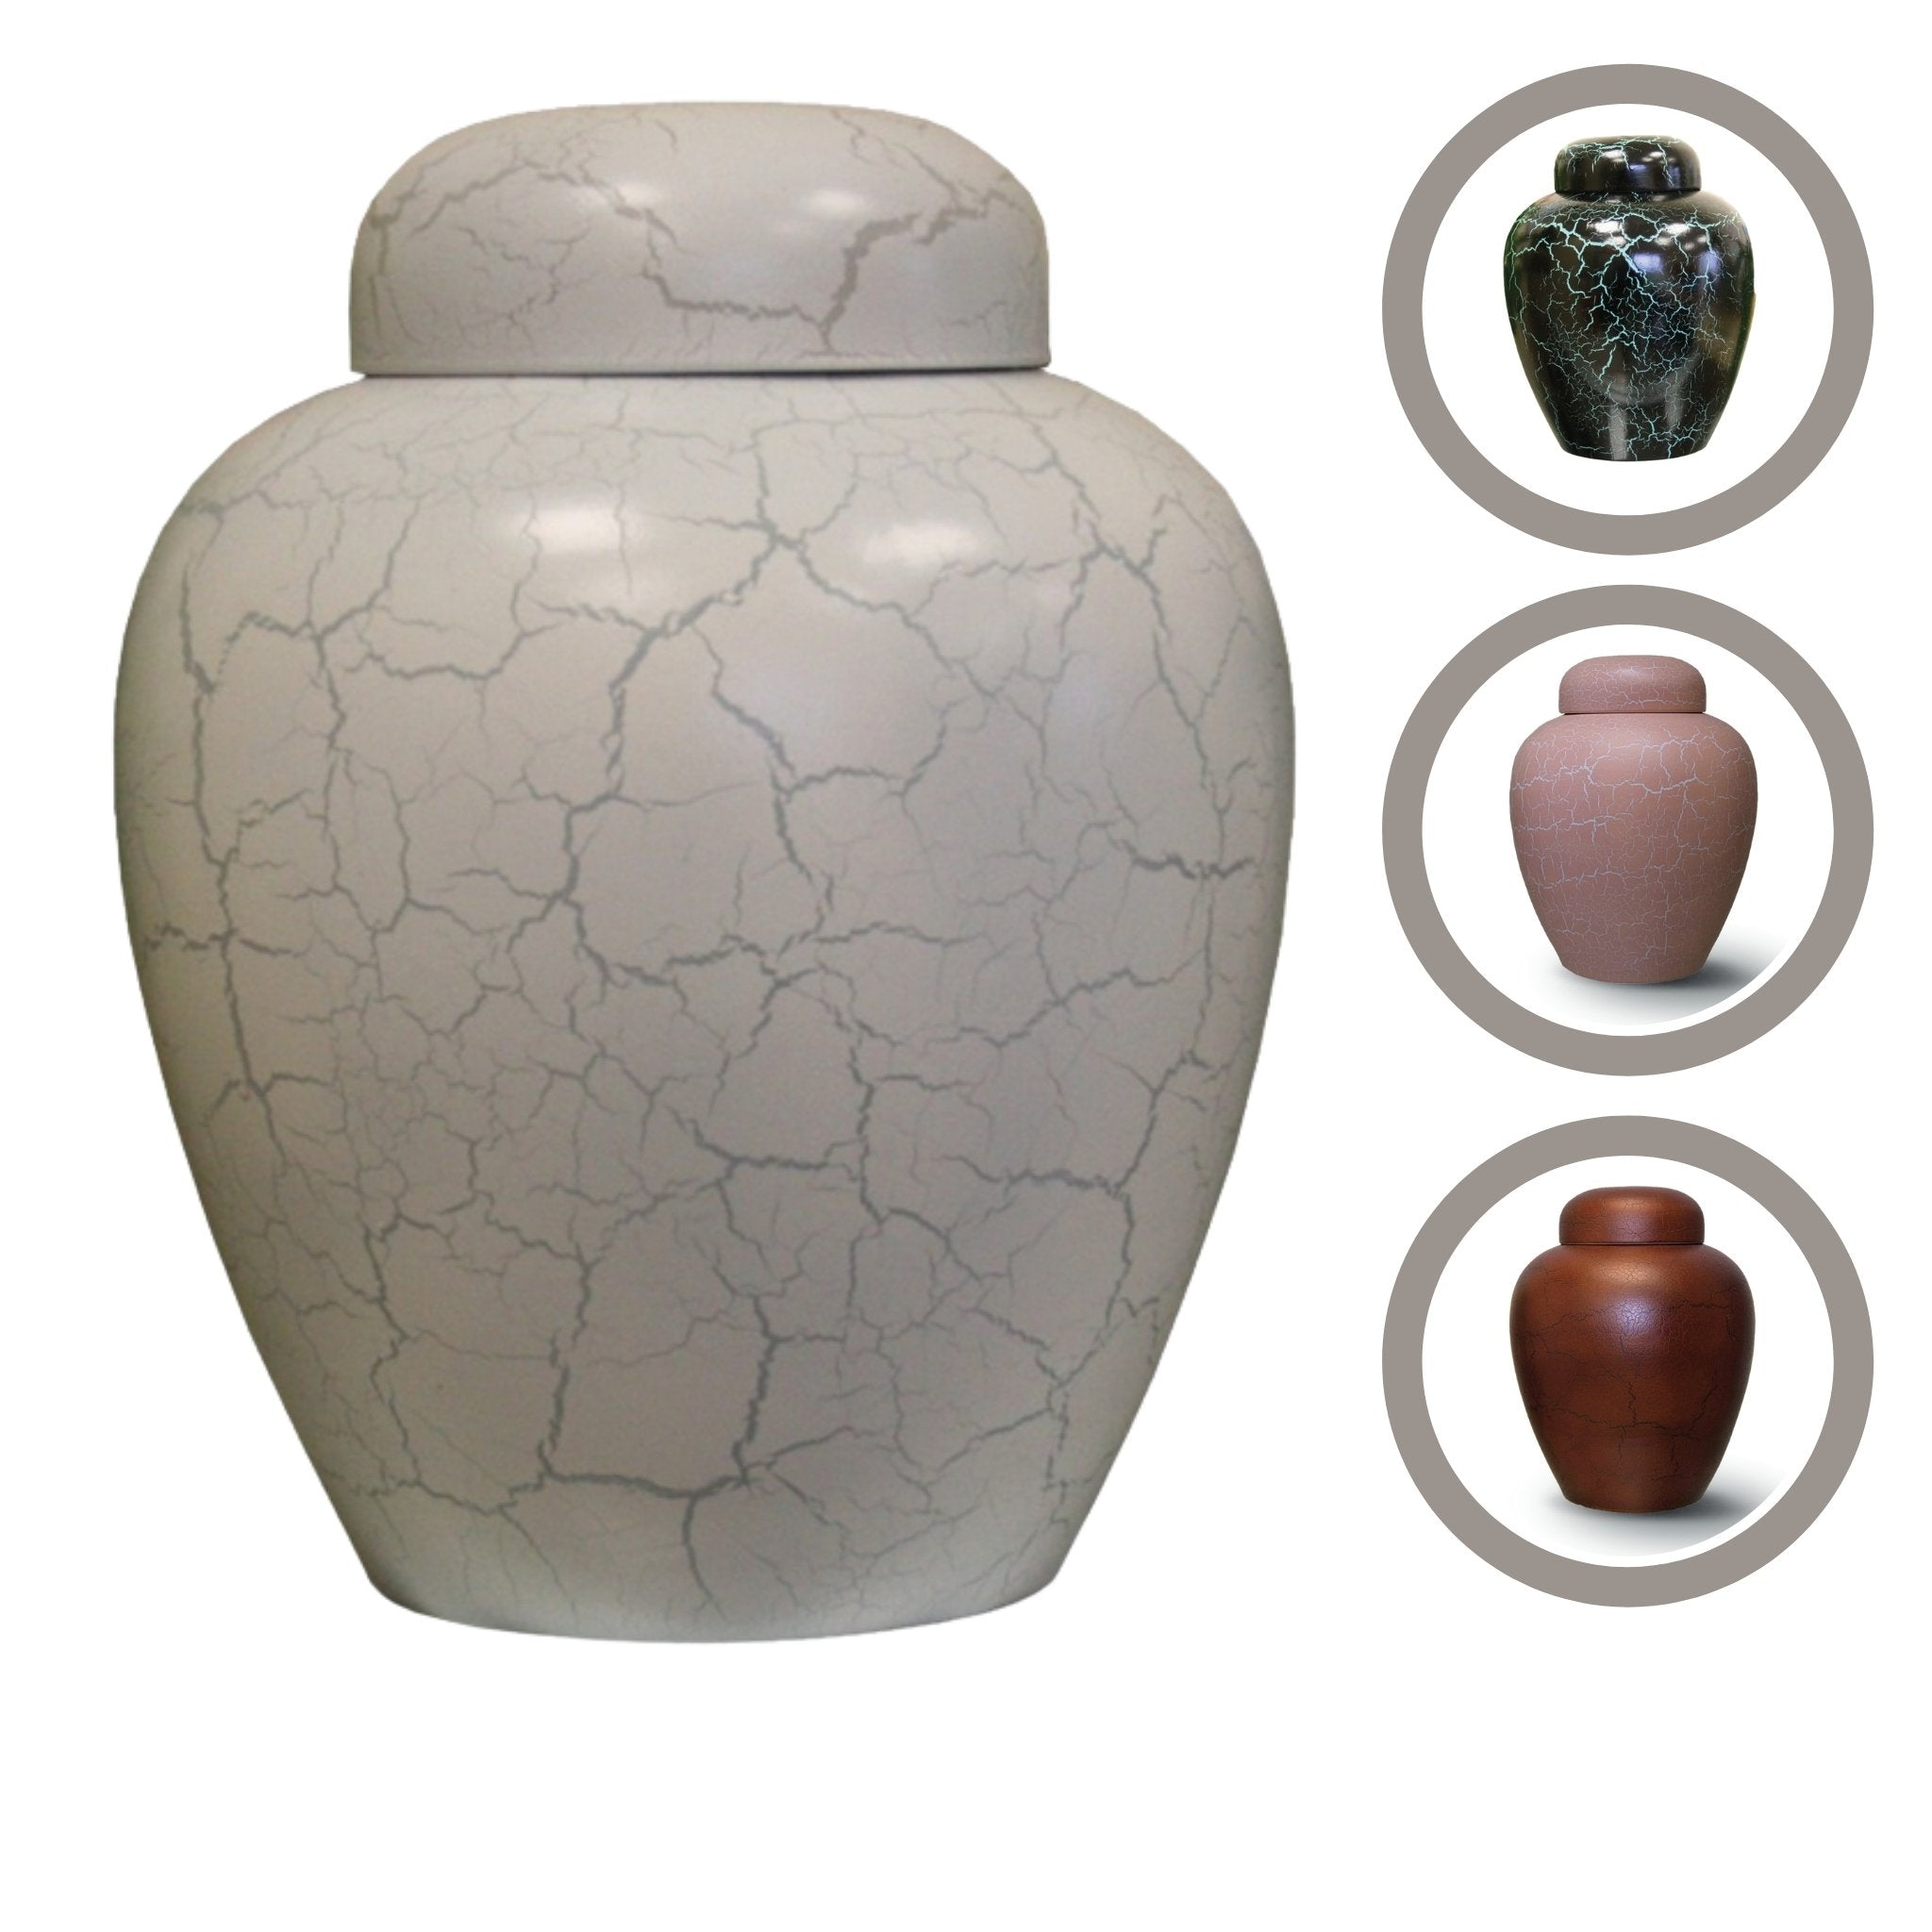 Ardallie Adult Cremation Ashes Urn Range